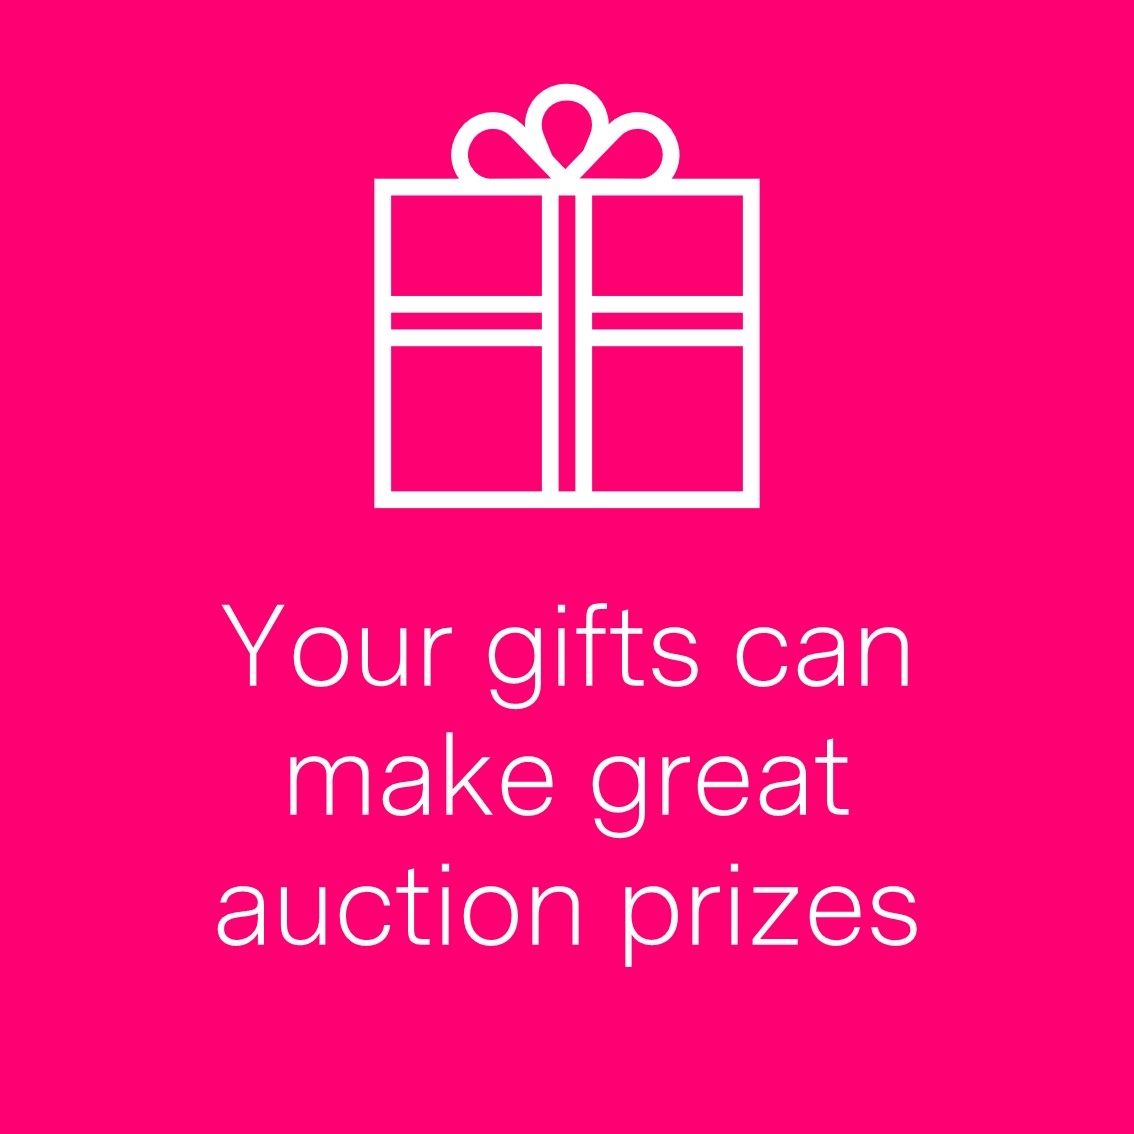 Watch this space, we'll soon be launching our bonanza birthday silent auction offering lots of fab prizes for you to bid on. You can also help make the auction a success by donating a gift for us to include in the prize list. Contact aberdeenfundrasing@maggiescentres.org